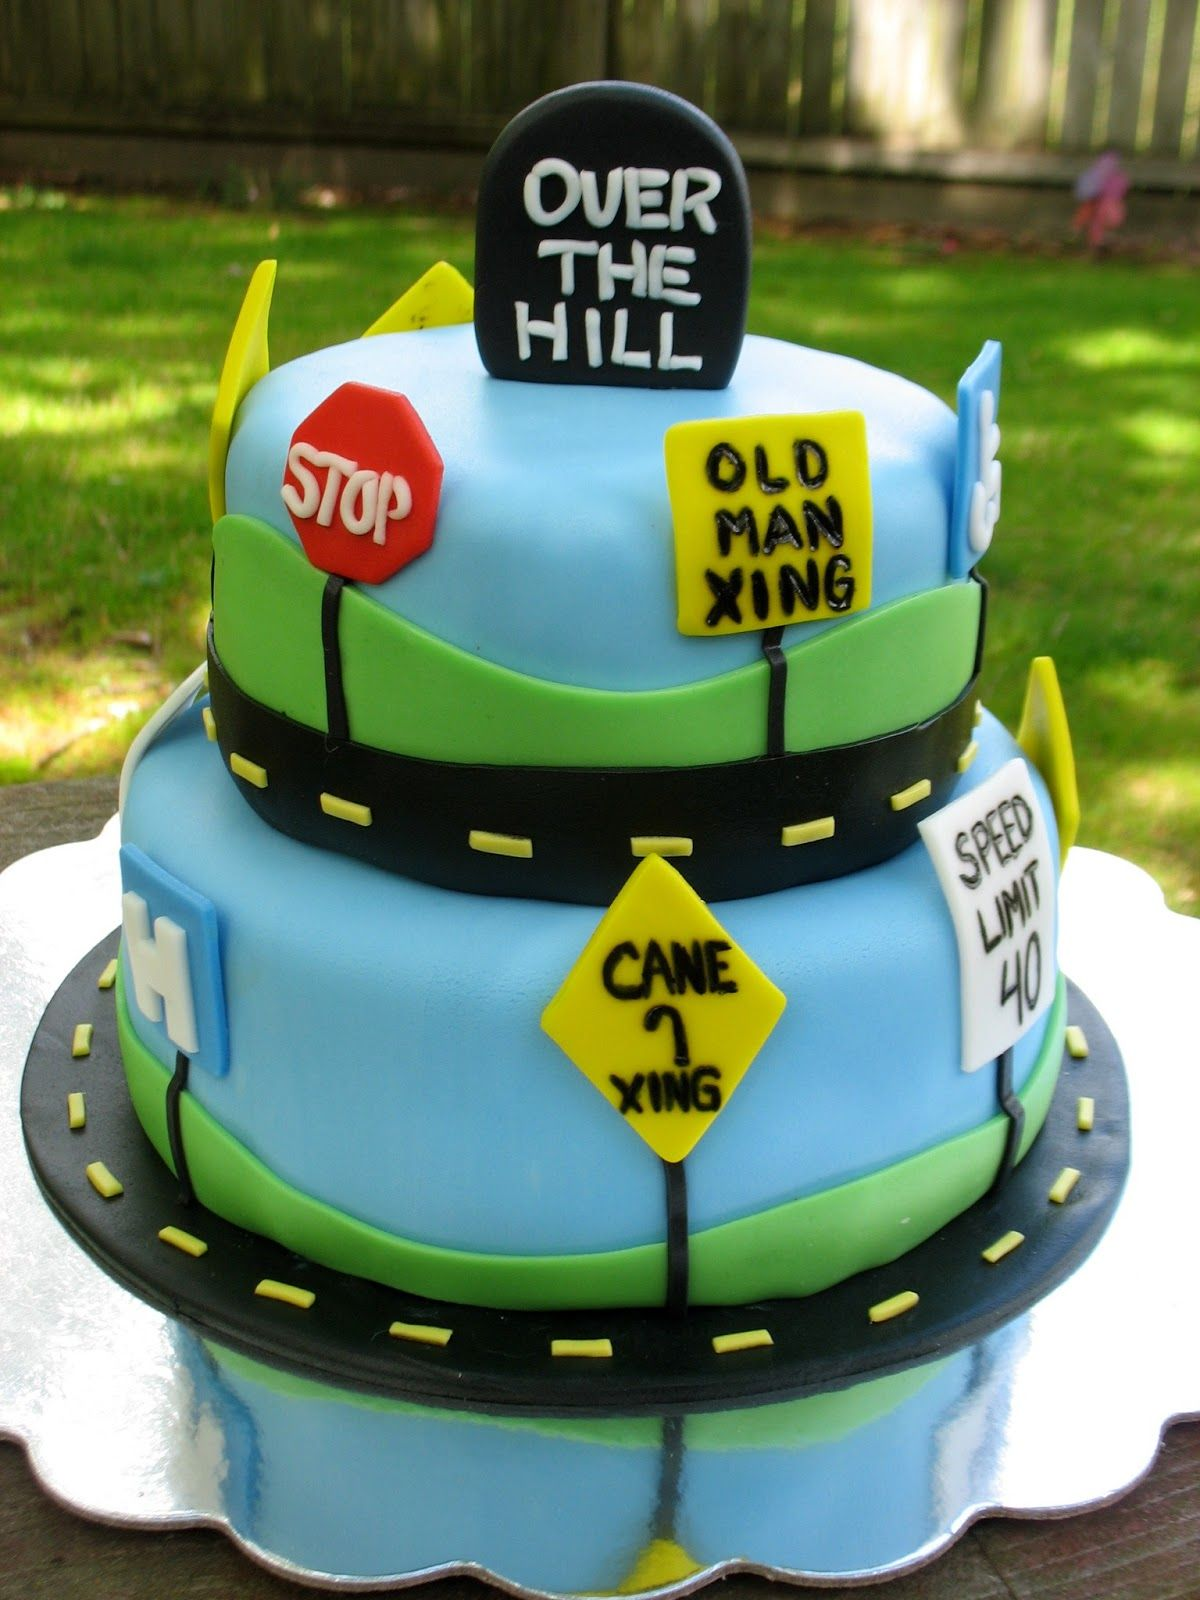 Creative Cakes by Christy Over the Hill cake Ideas for the House